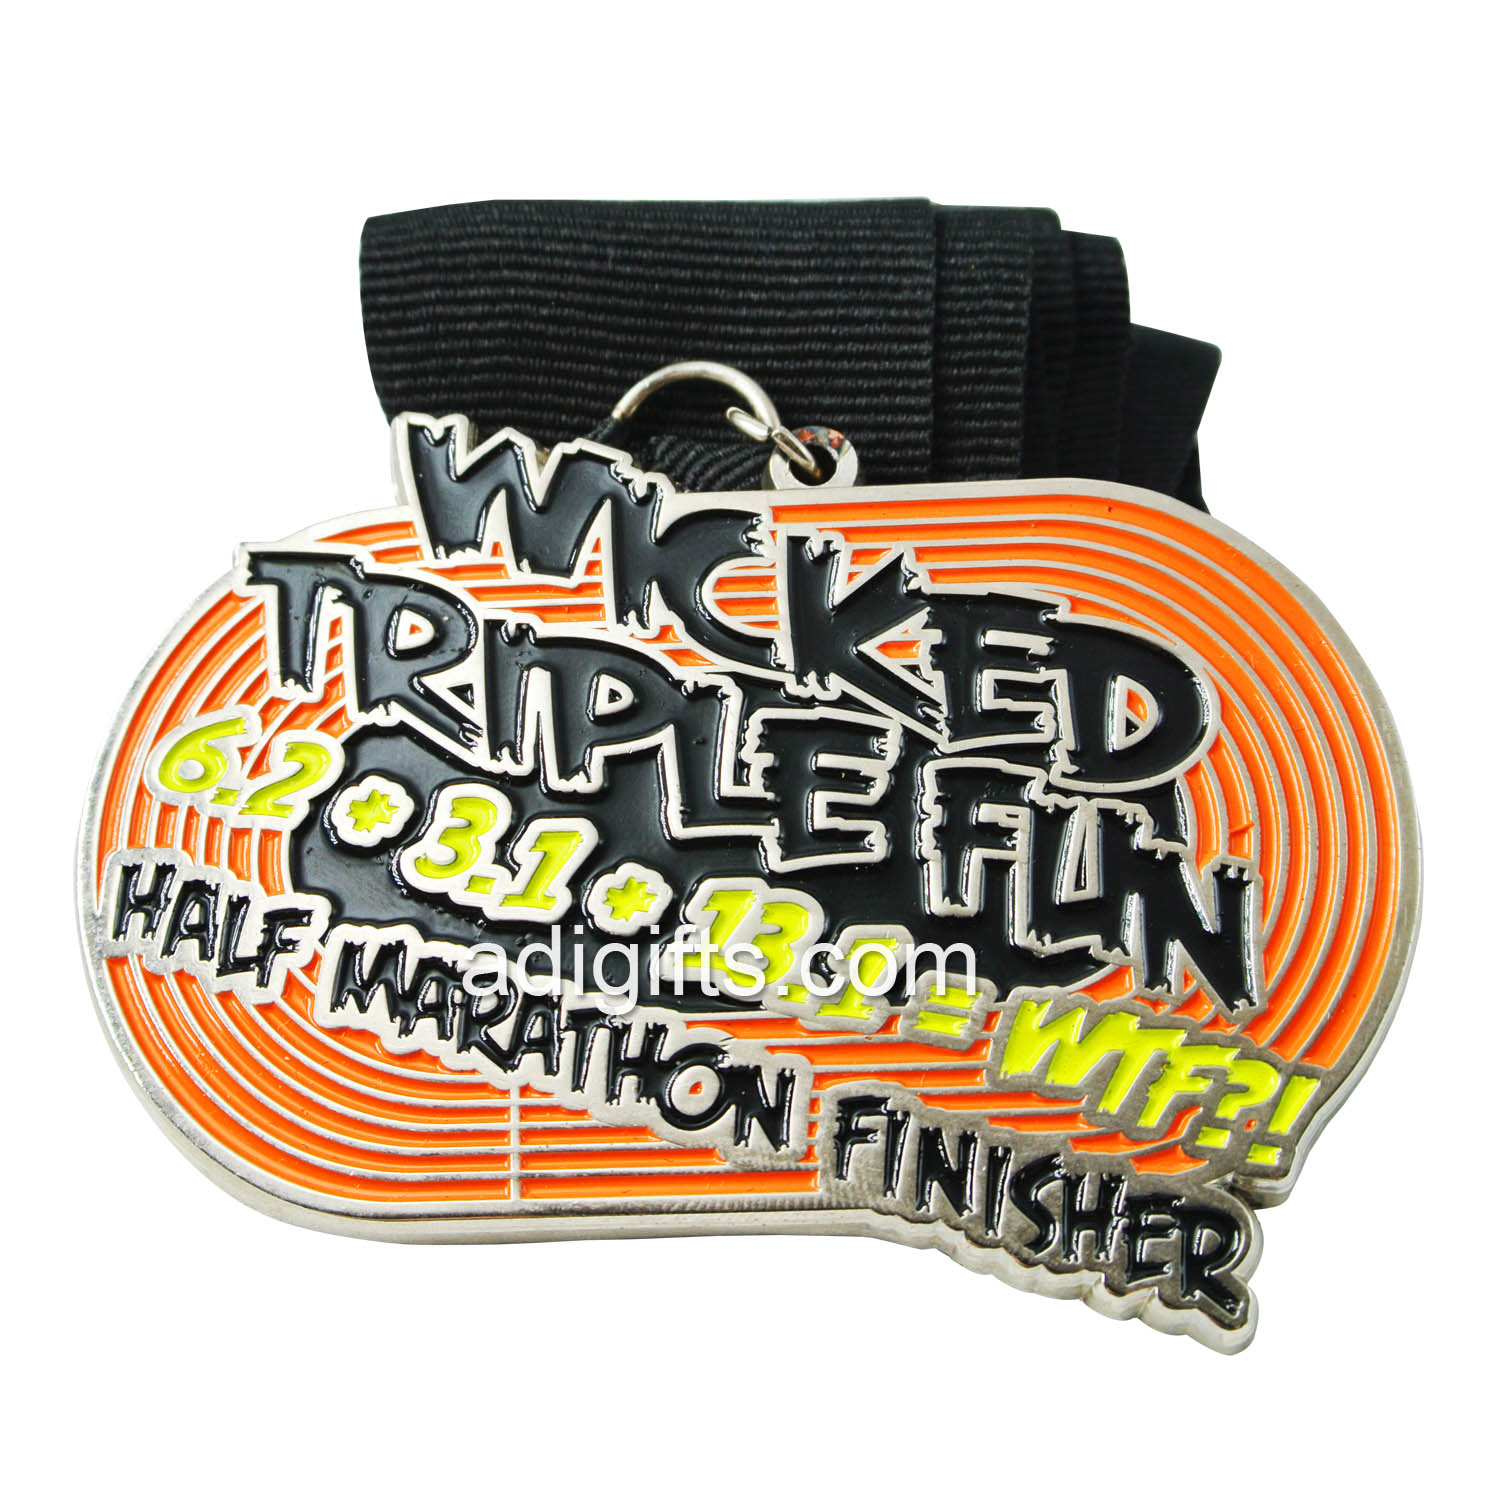 Customized half marathon triple fun medal